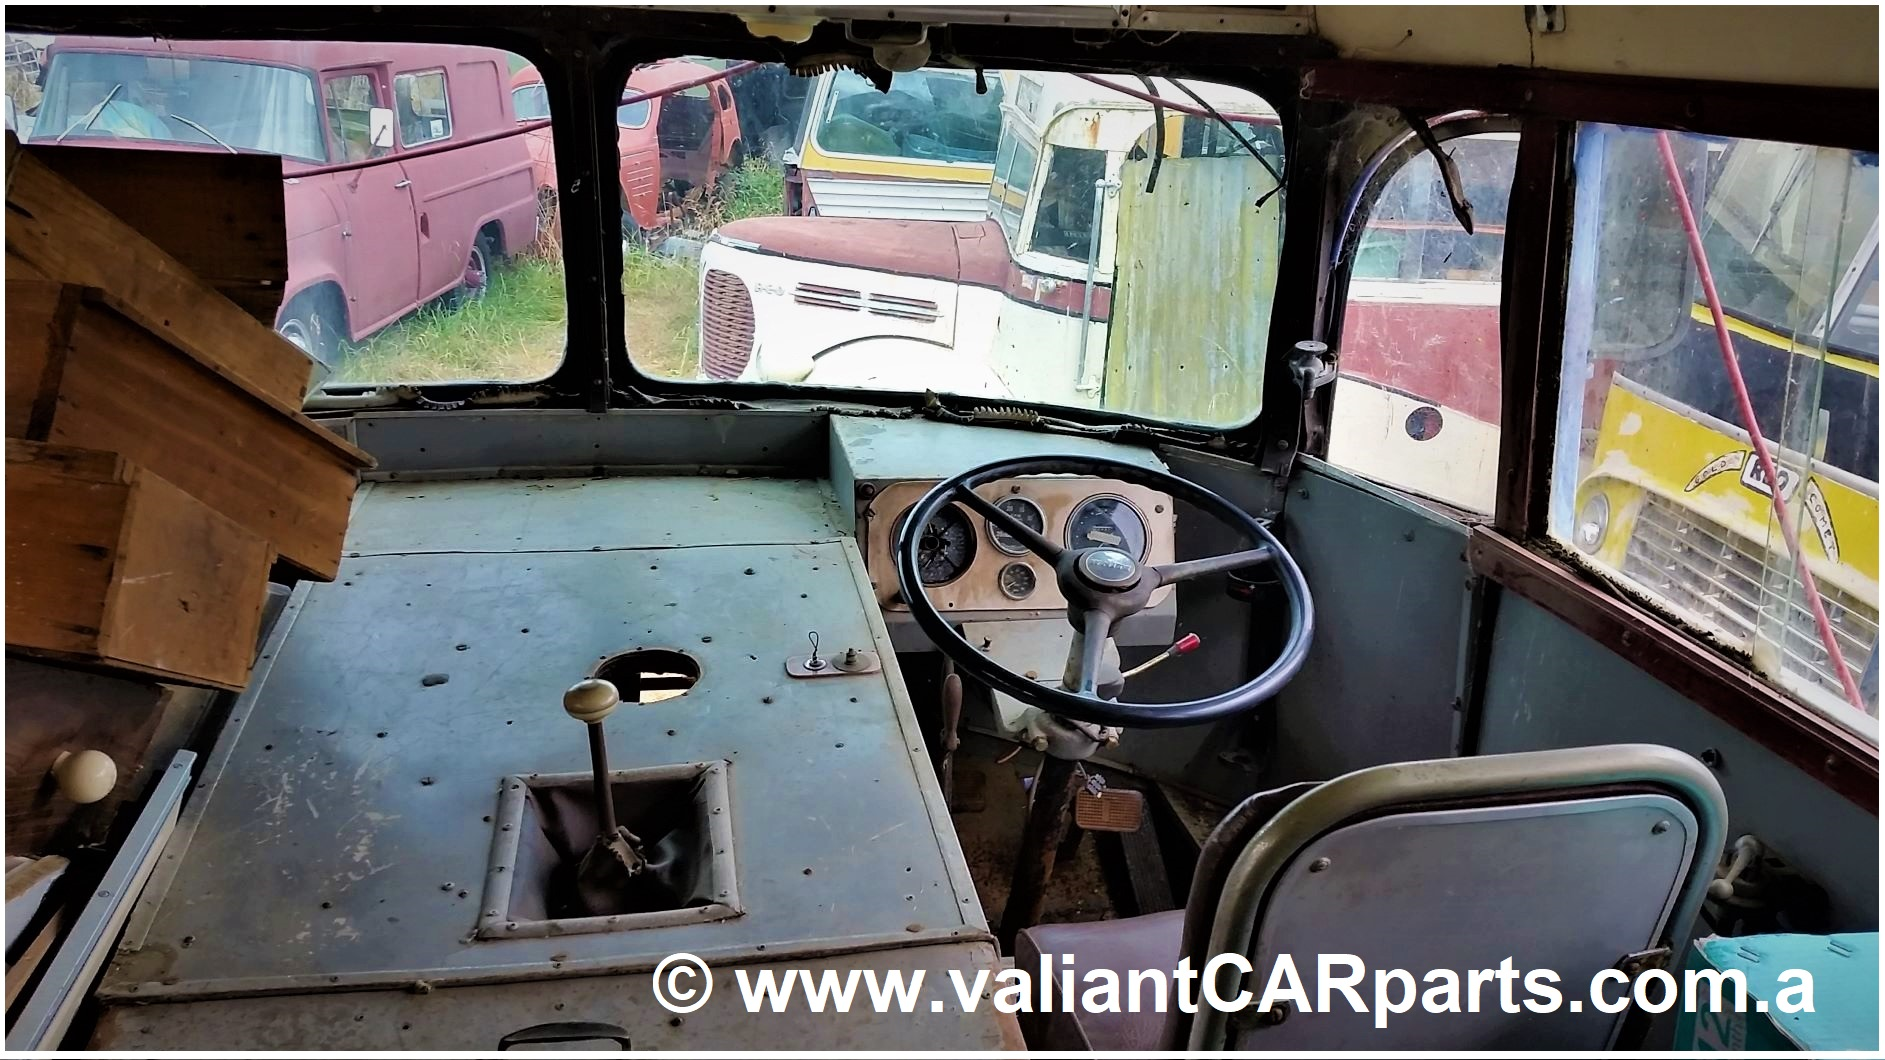 1954_WB22_WHITE_Lismore_vintage_bus_Coach_for_sale-Cockpit